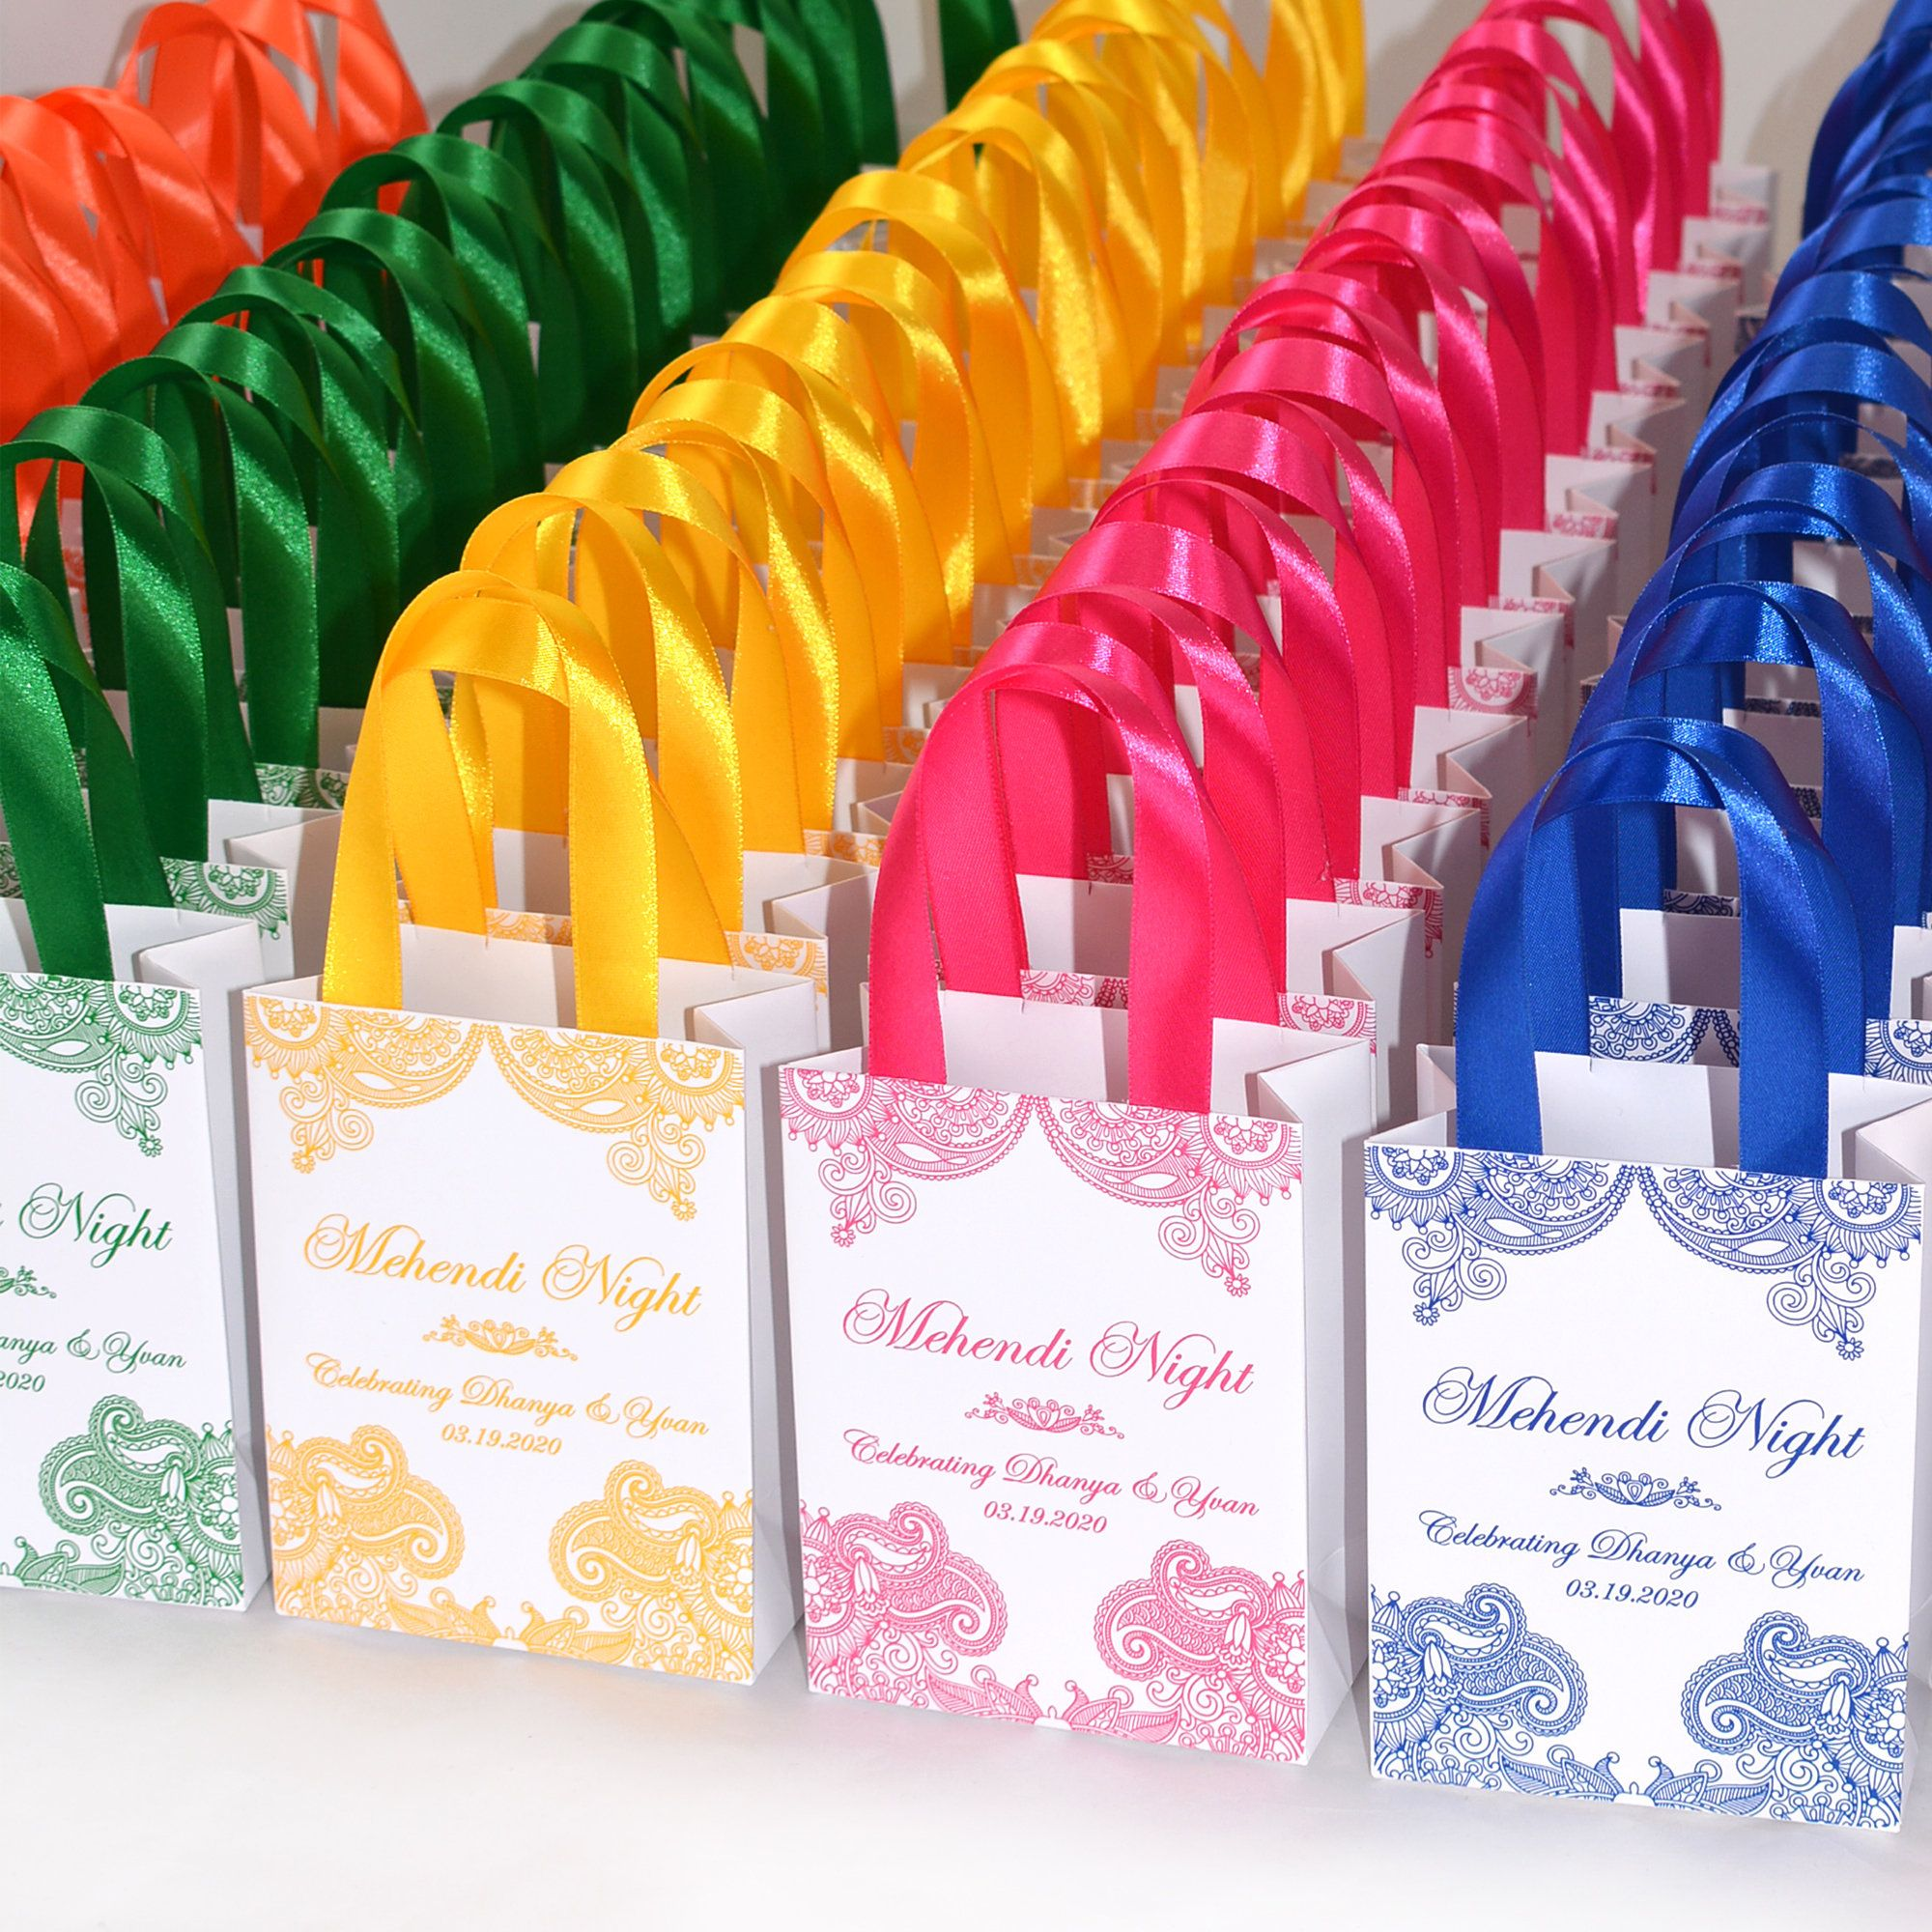 25 mehendi night gift bags with satin ribbon your names